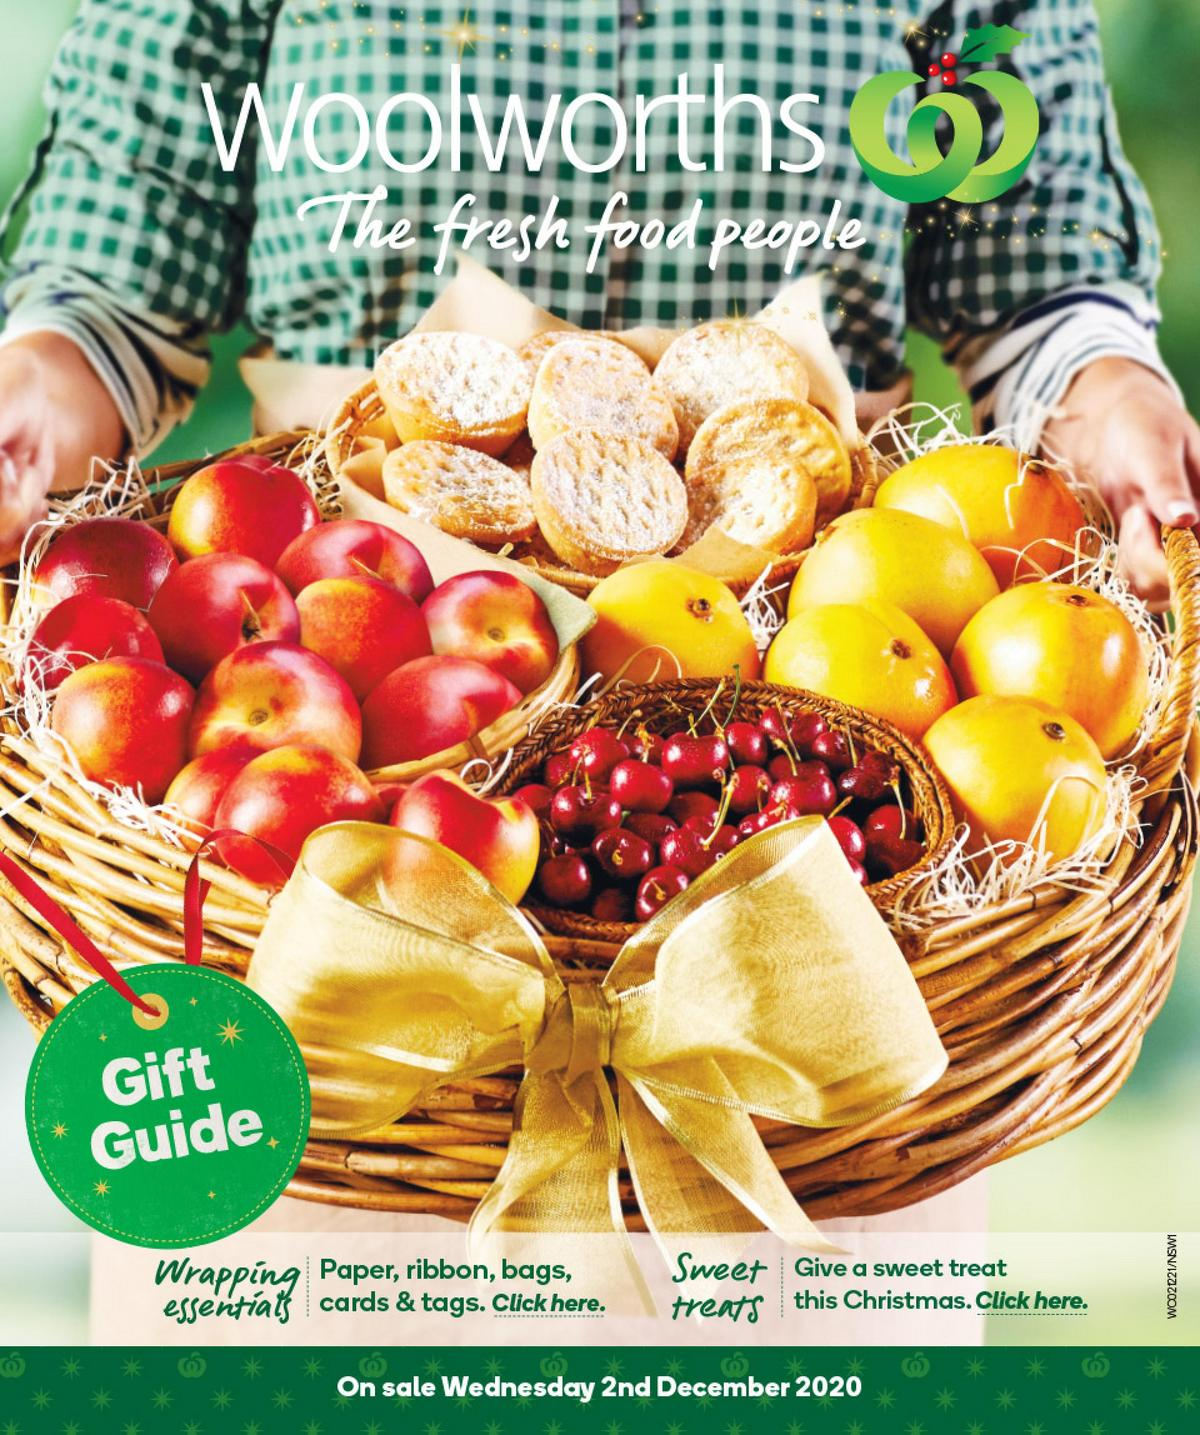 Woolworths Christmas Gift Guide Catalogues from December 2